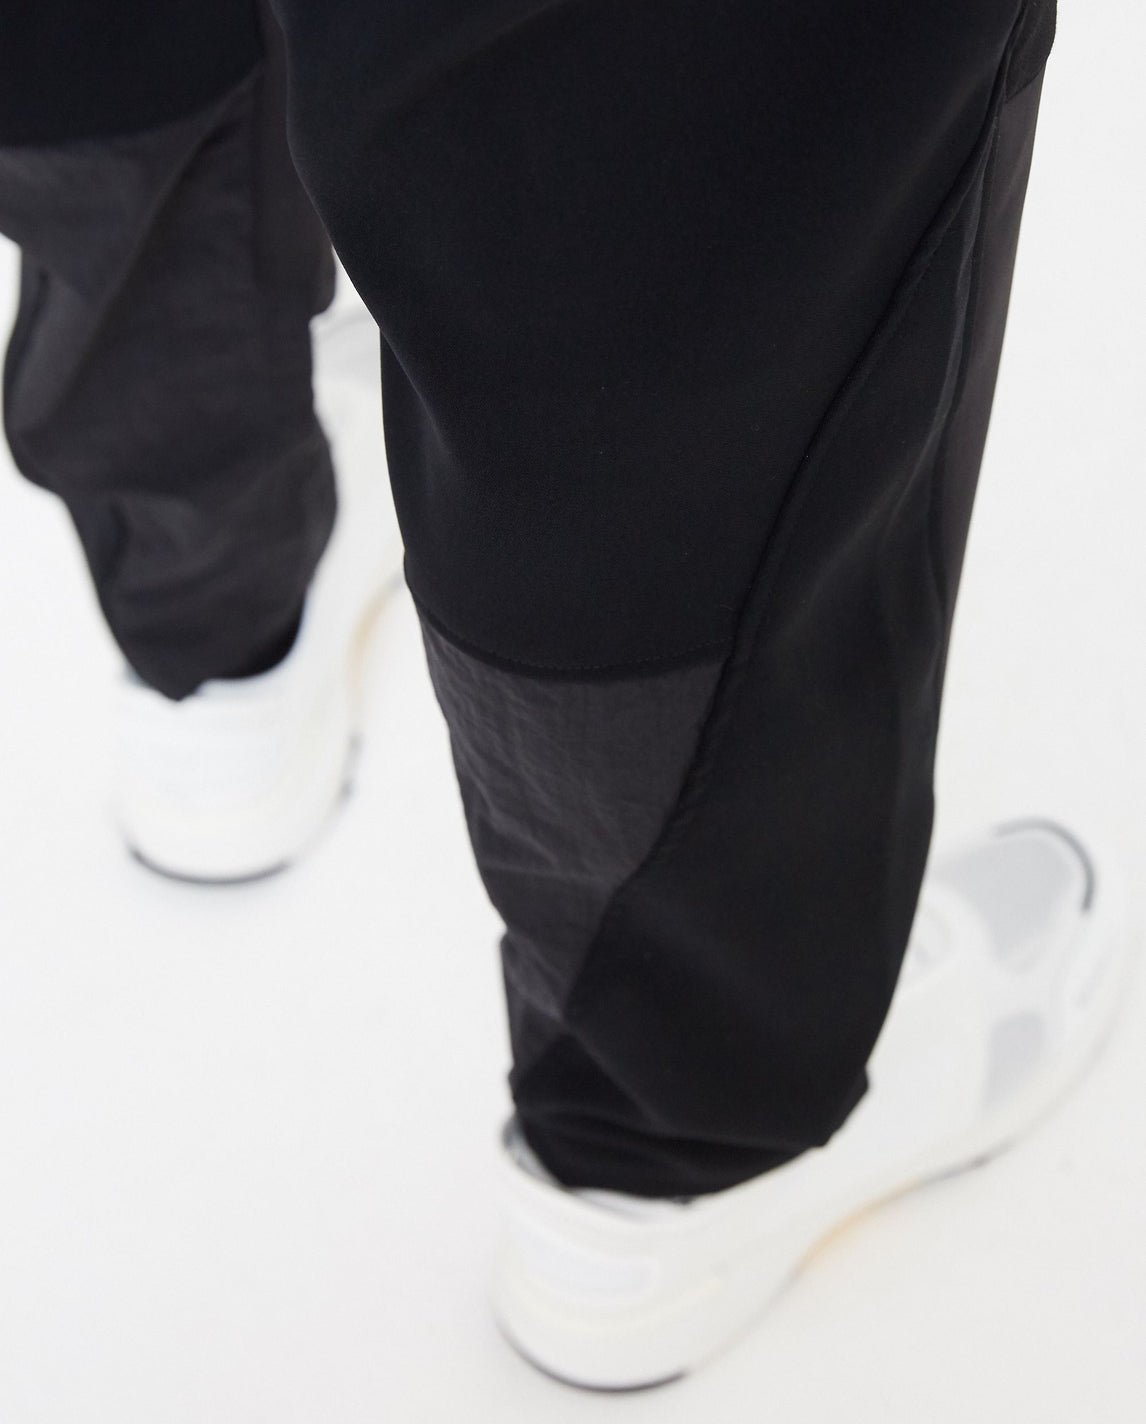 Patchwork Tech Pants - Black MENS WHITE MOUNTAINEERING